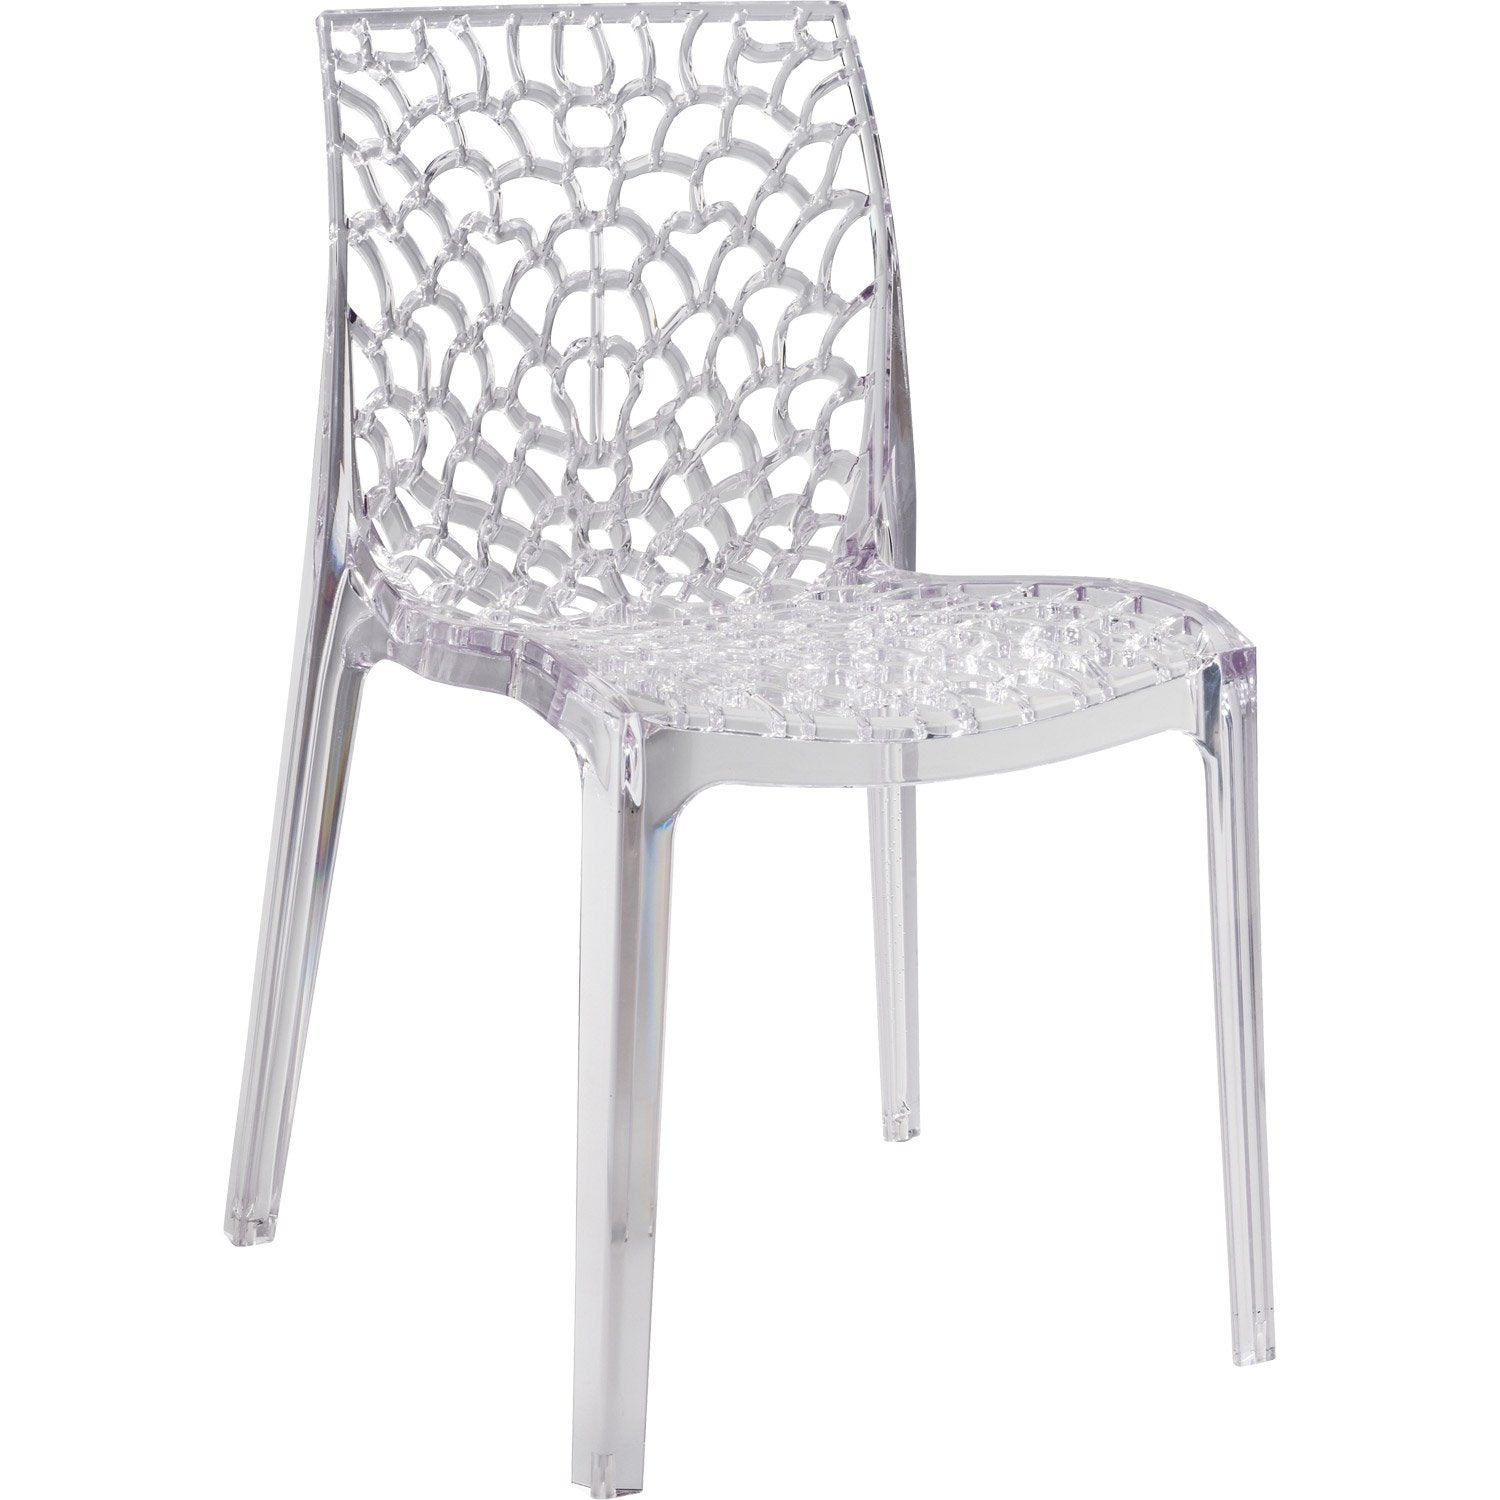 Chaise de jardin en polycarbonate grafik lux transparent for Chaise de cuisine plastique